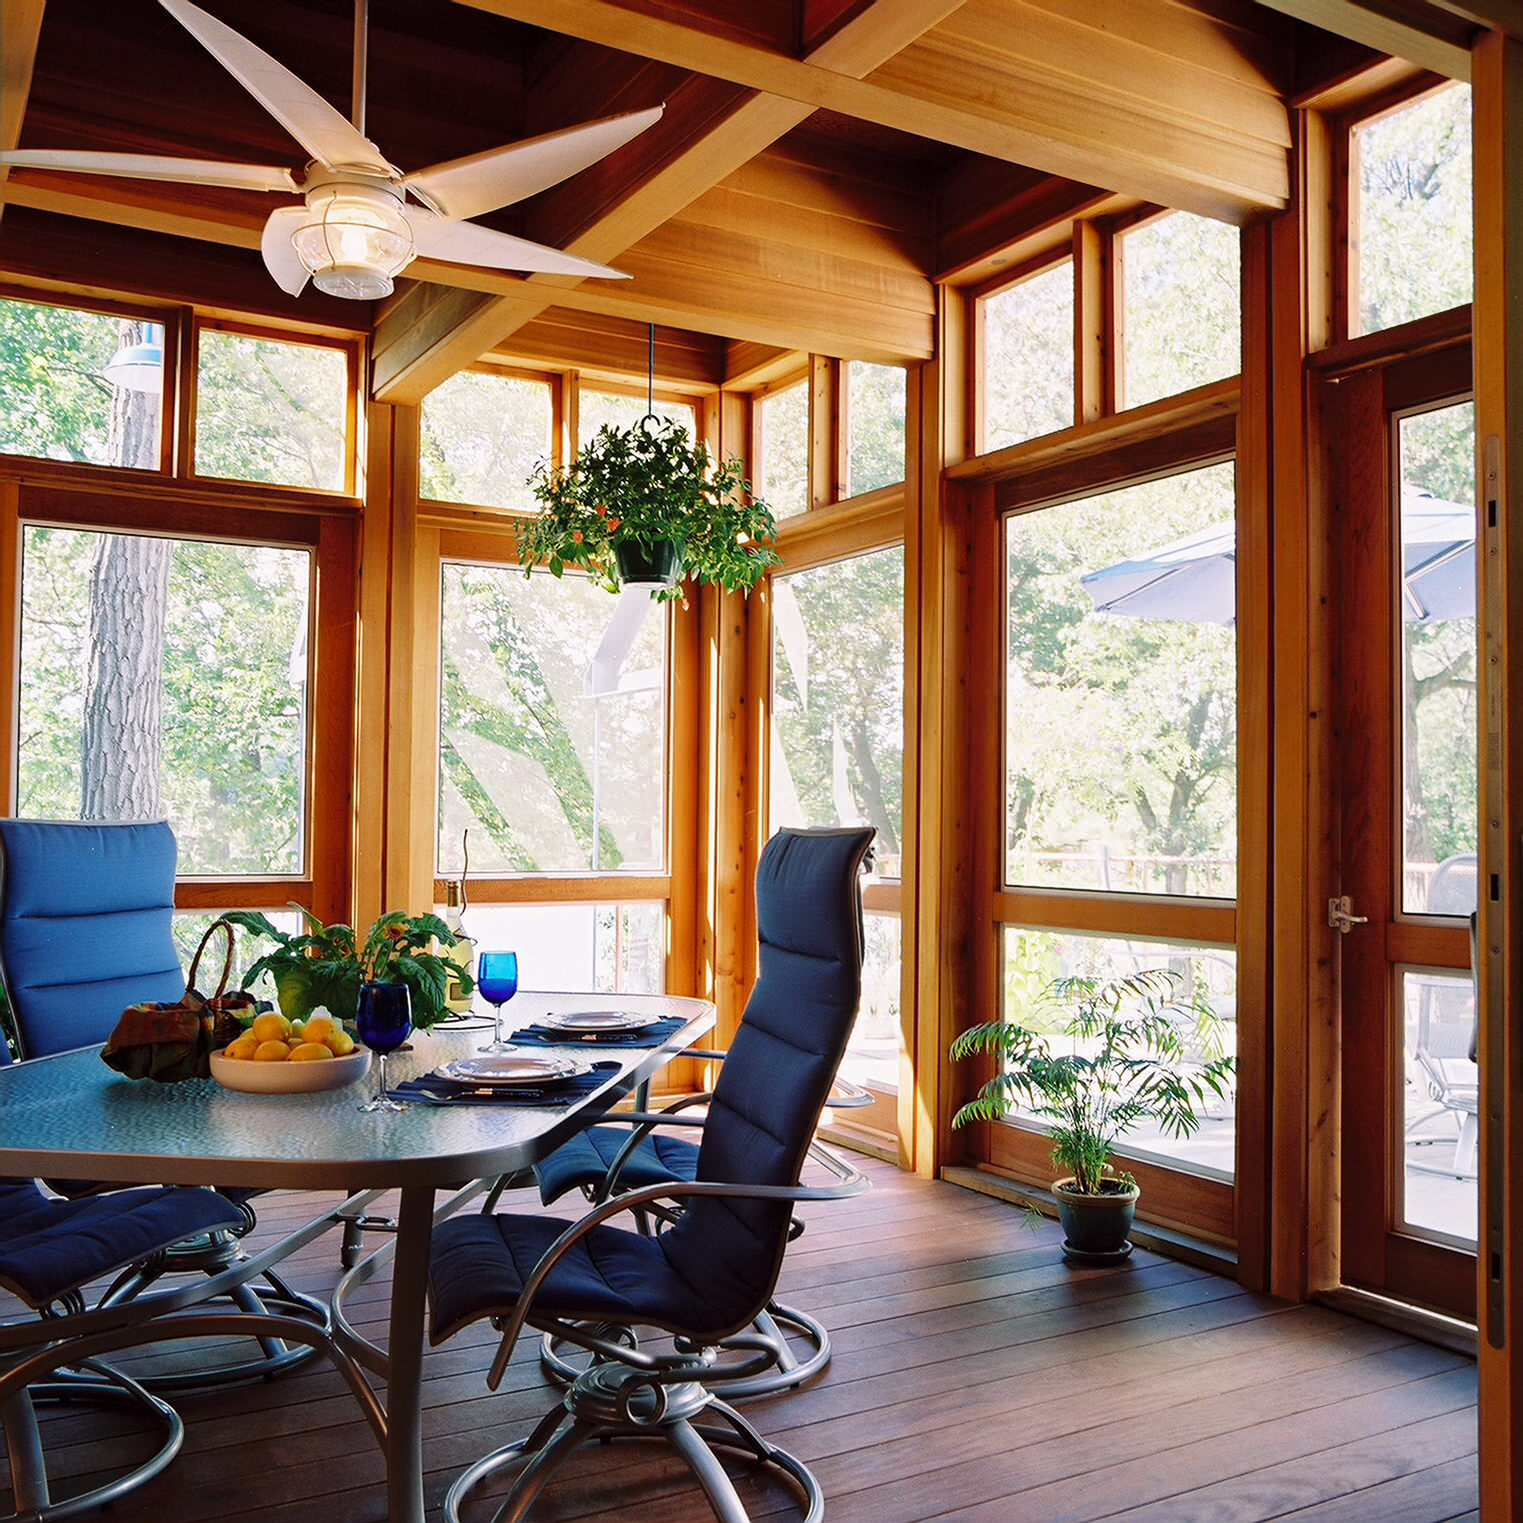 Enclosed Porch Decorating Ideas: Creating A Beautifully Transitional Enclosed Porch